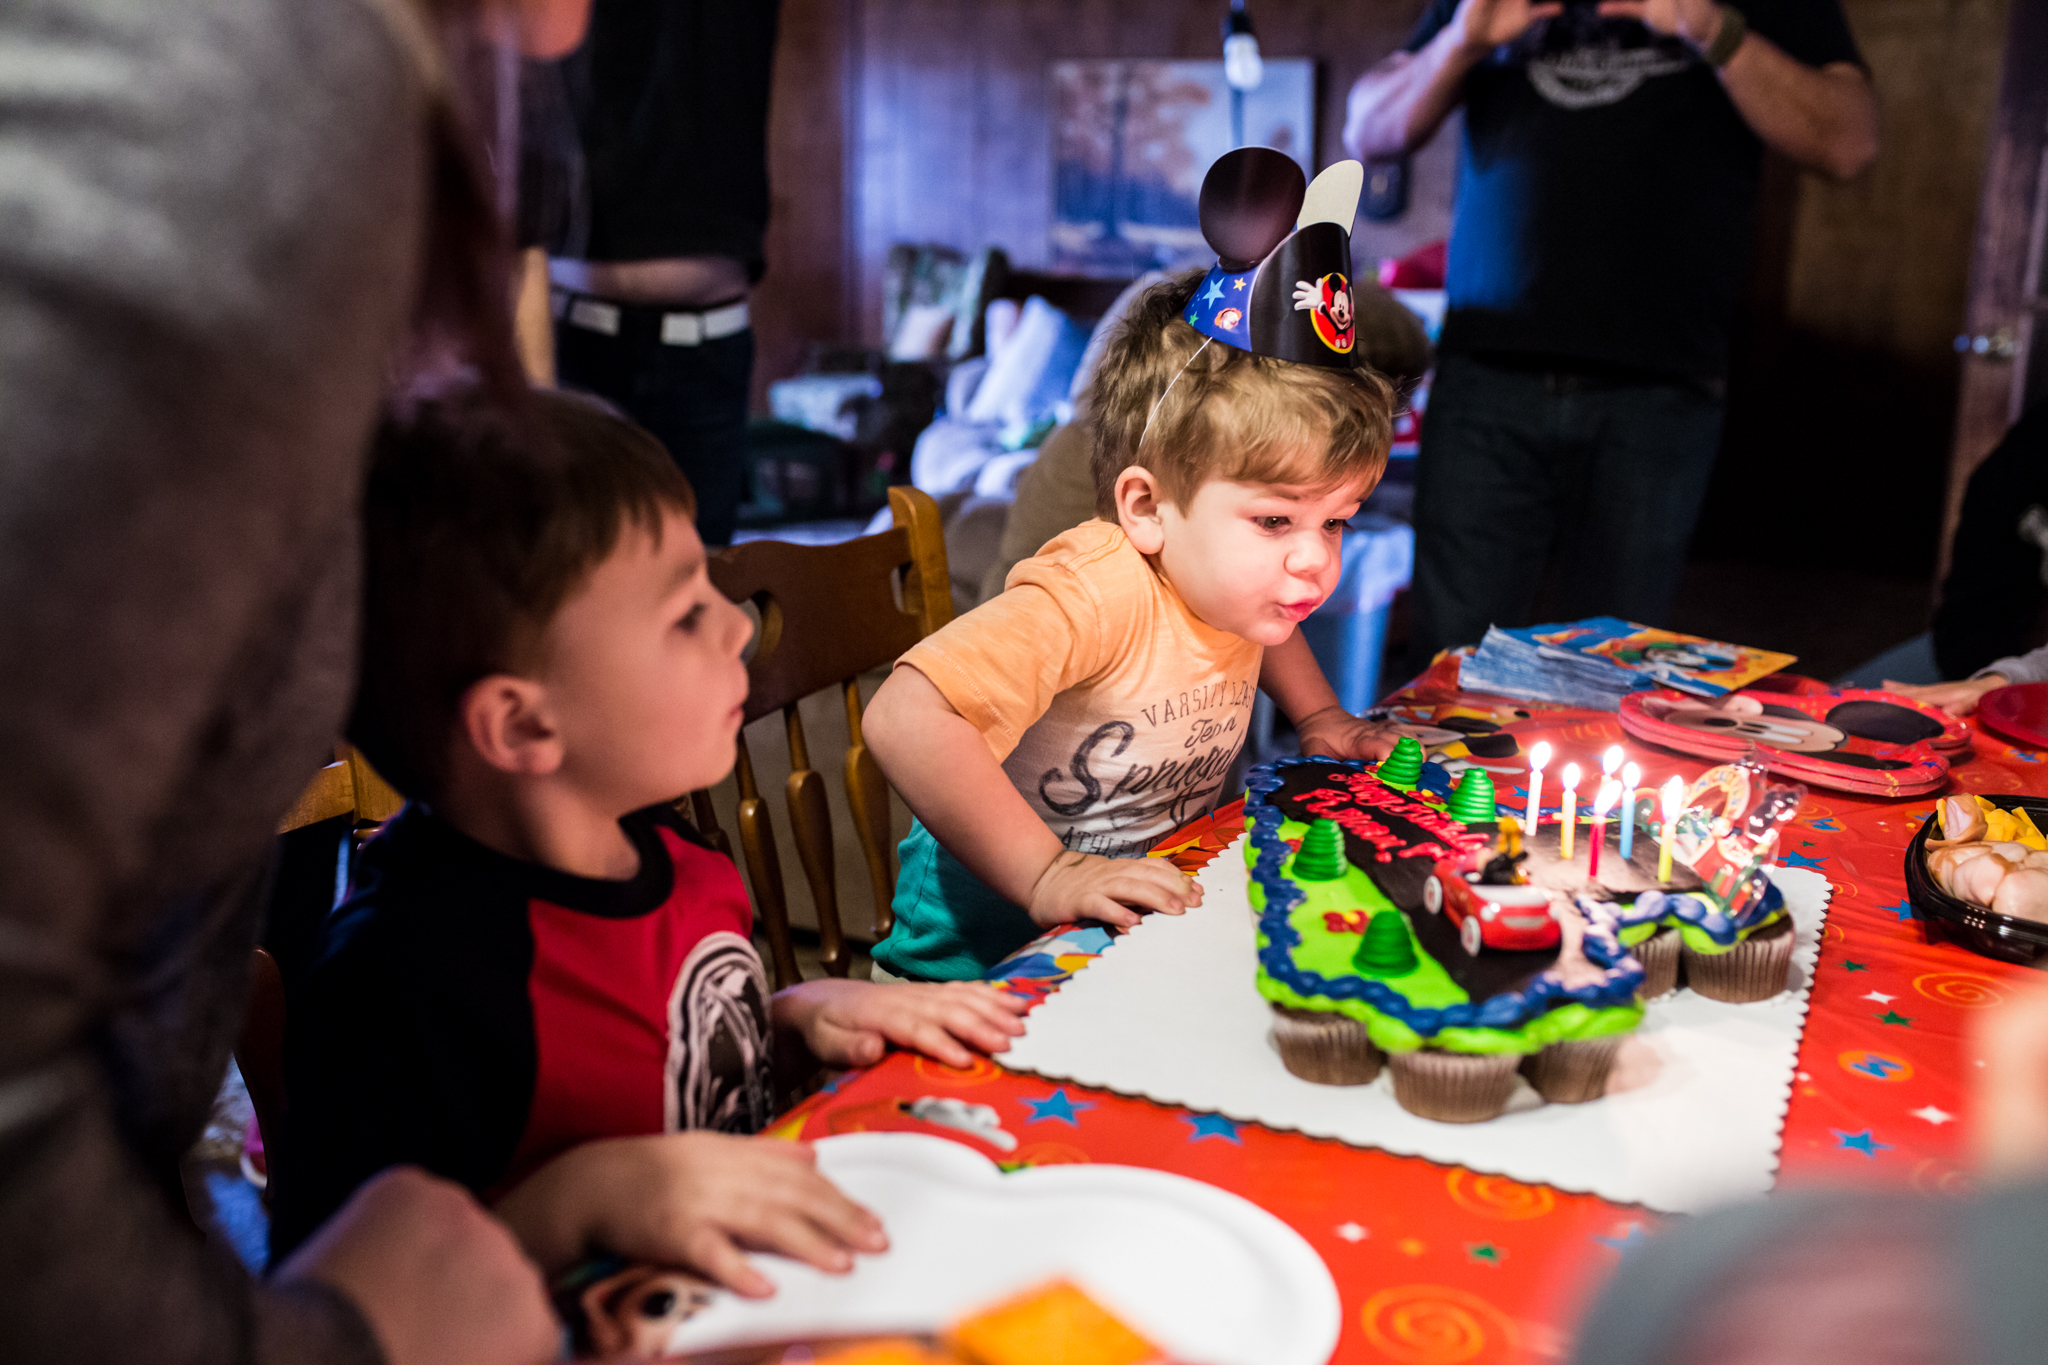 little boy blows out birthday candles